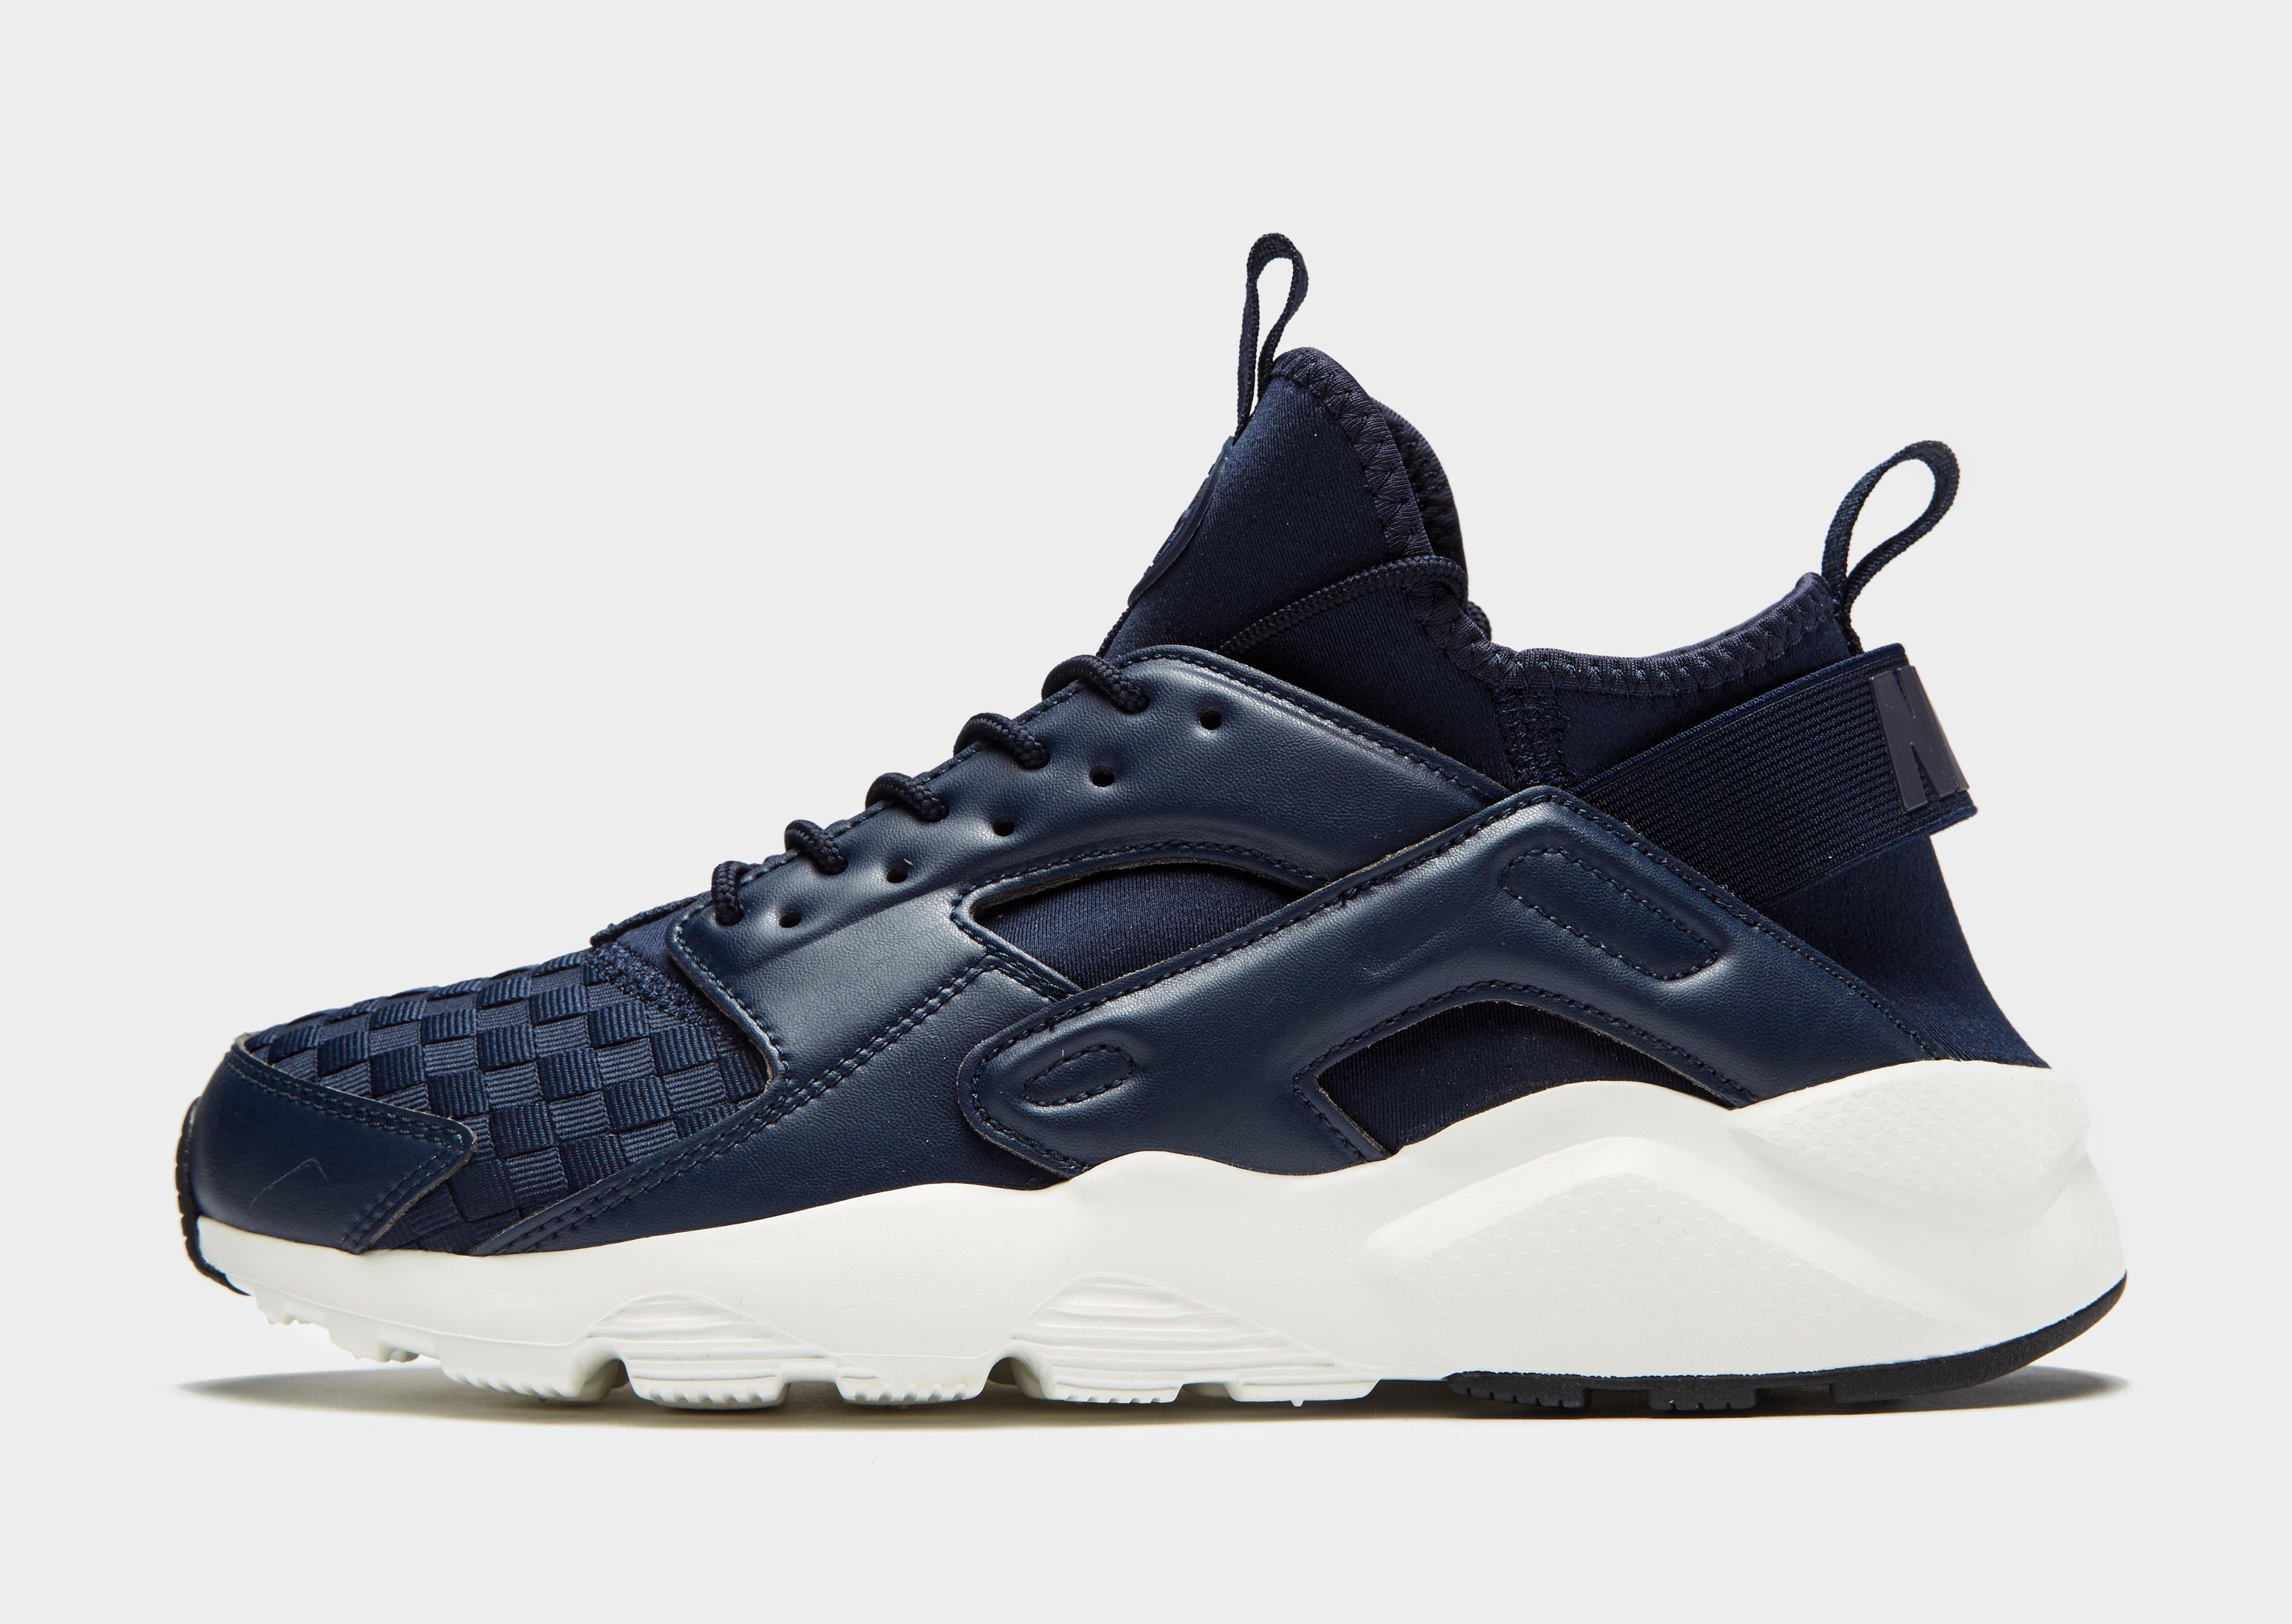 0f42db253b1c6 ... wholesale lyst nike air huarache ultra se in blue for men a823a 8f895